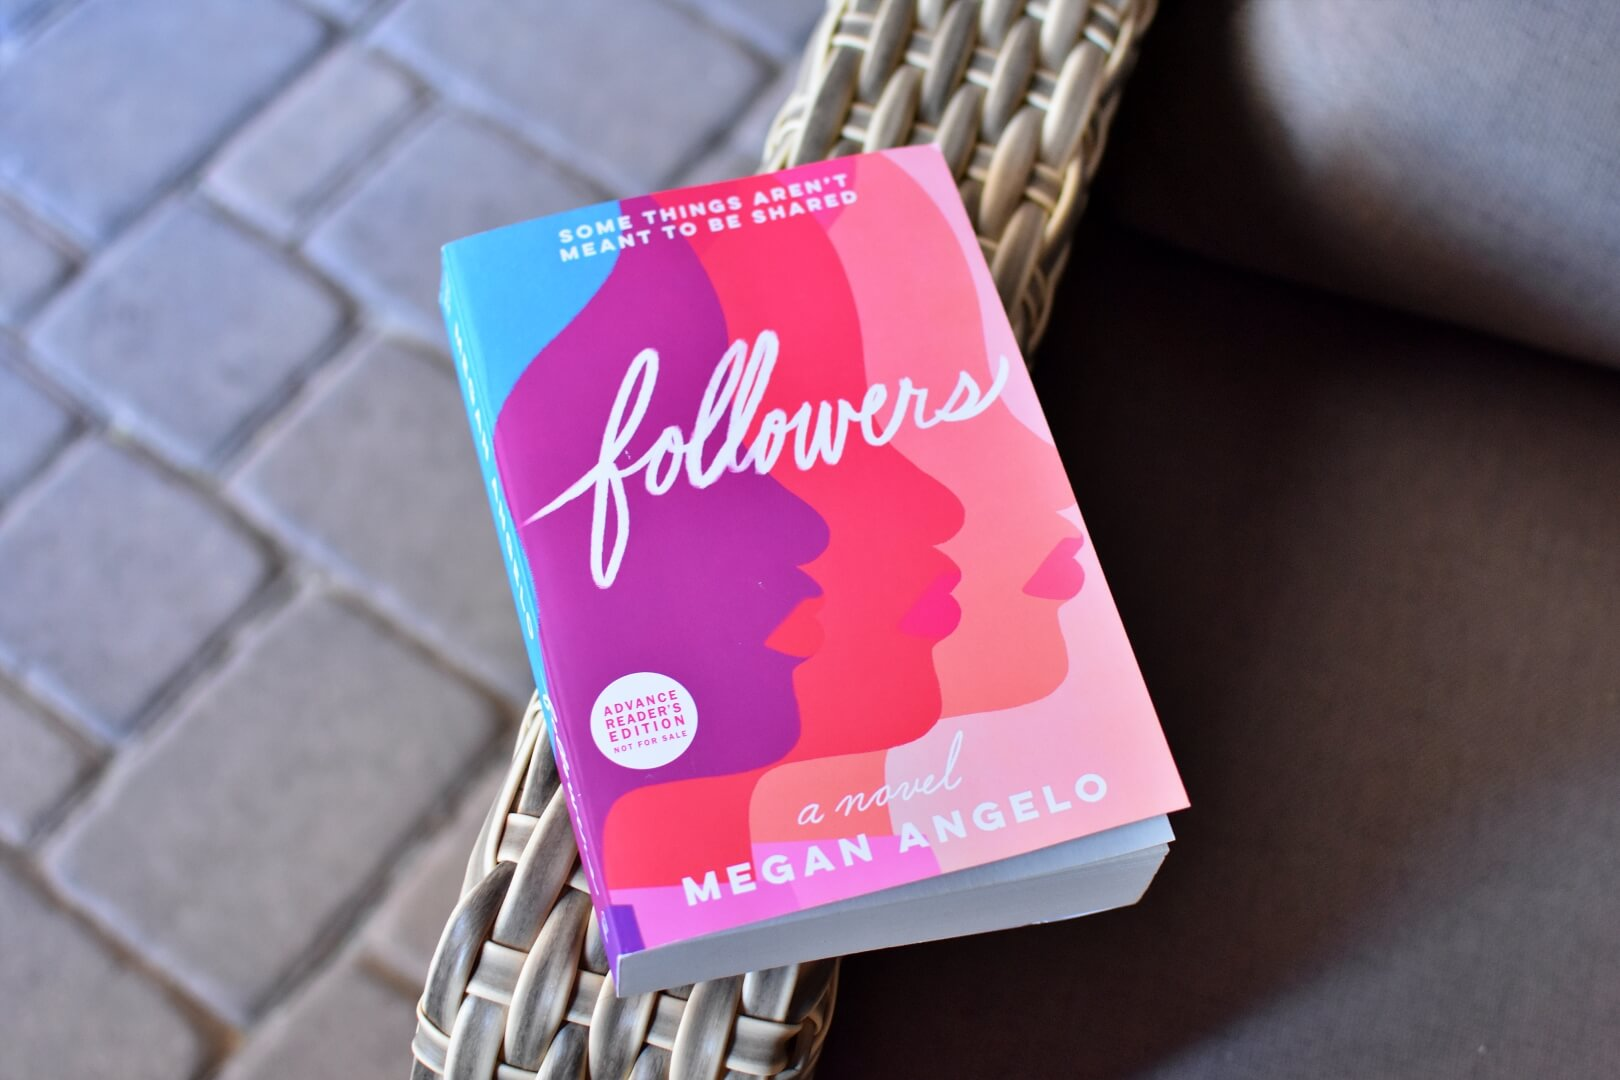 review for followers - book club chat